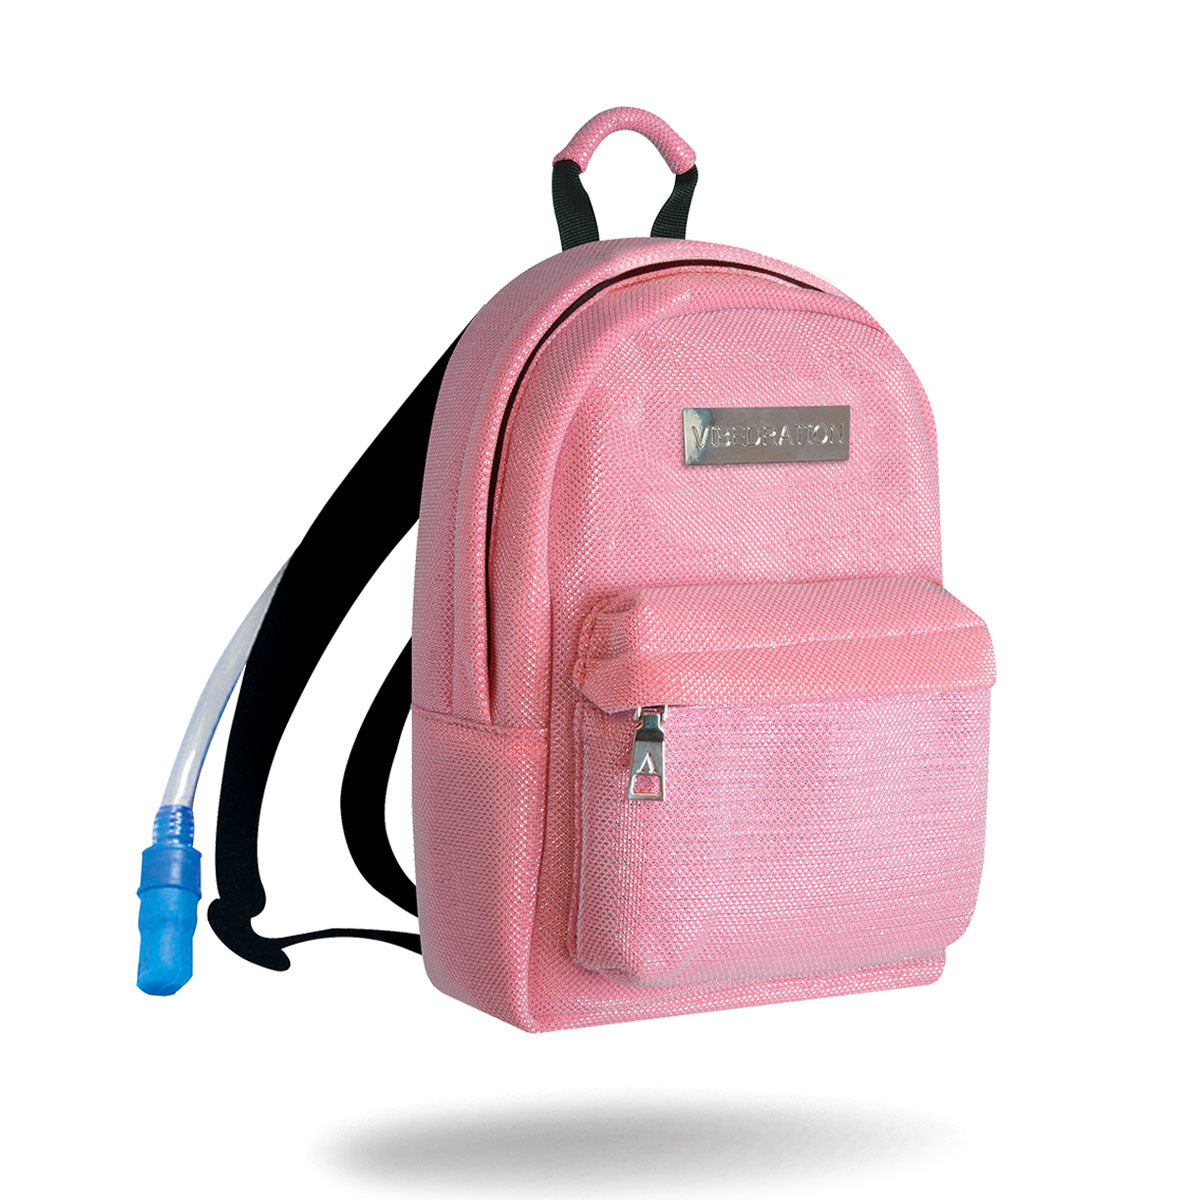 Kotton Kandi Pink Mini Rave Hydration Pack with one liter water bladder.